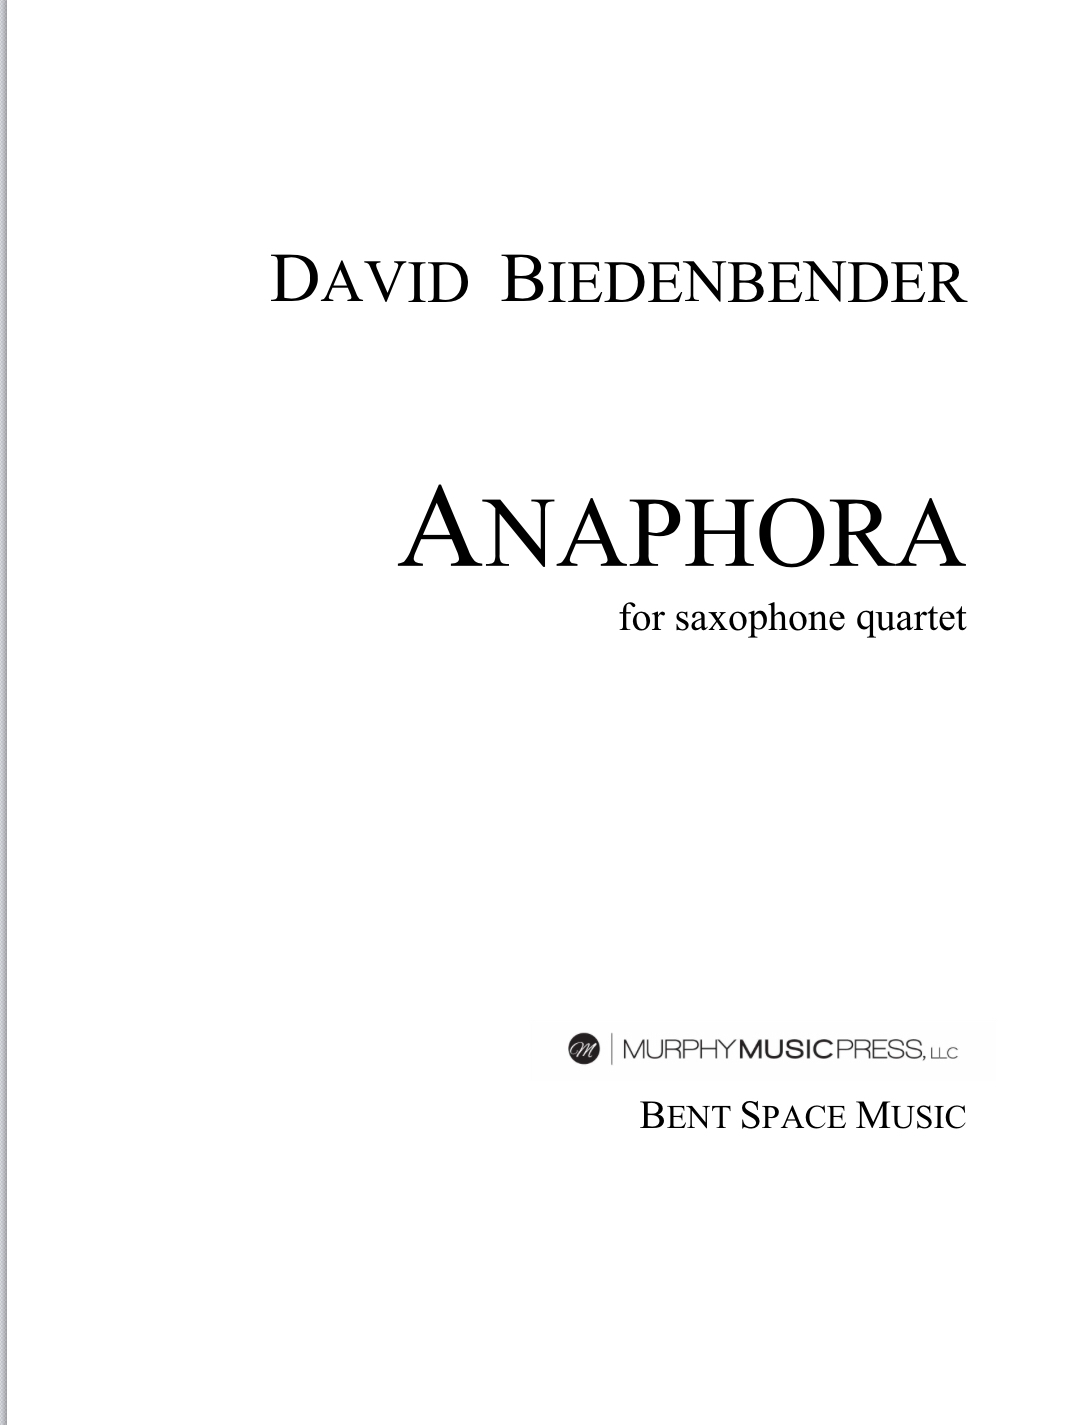 Anaphora  by David Biedenbender